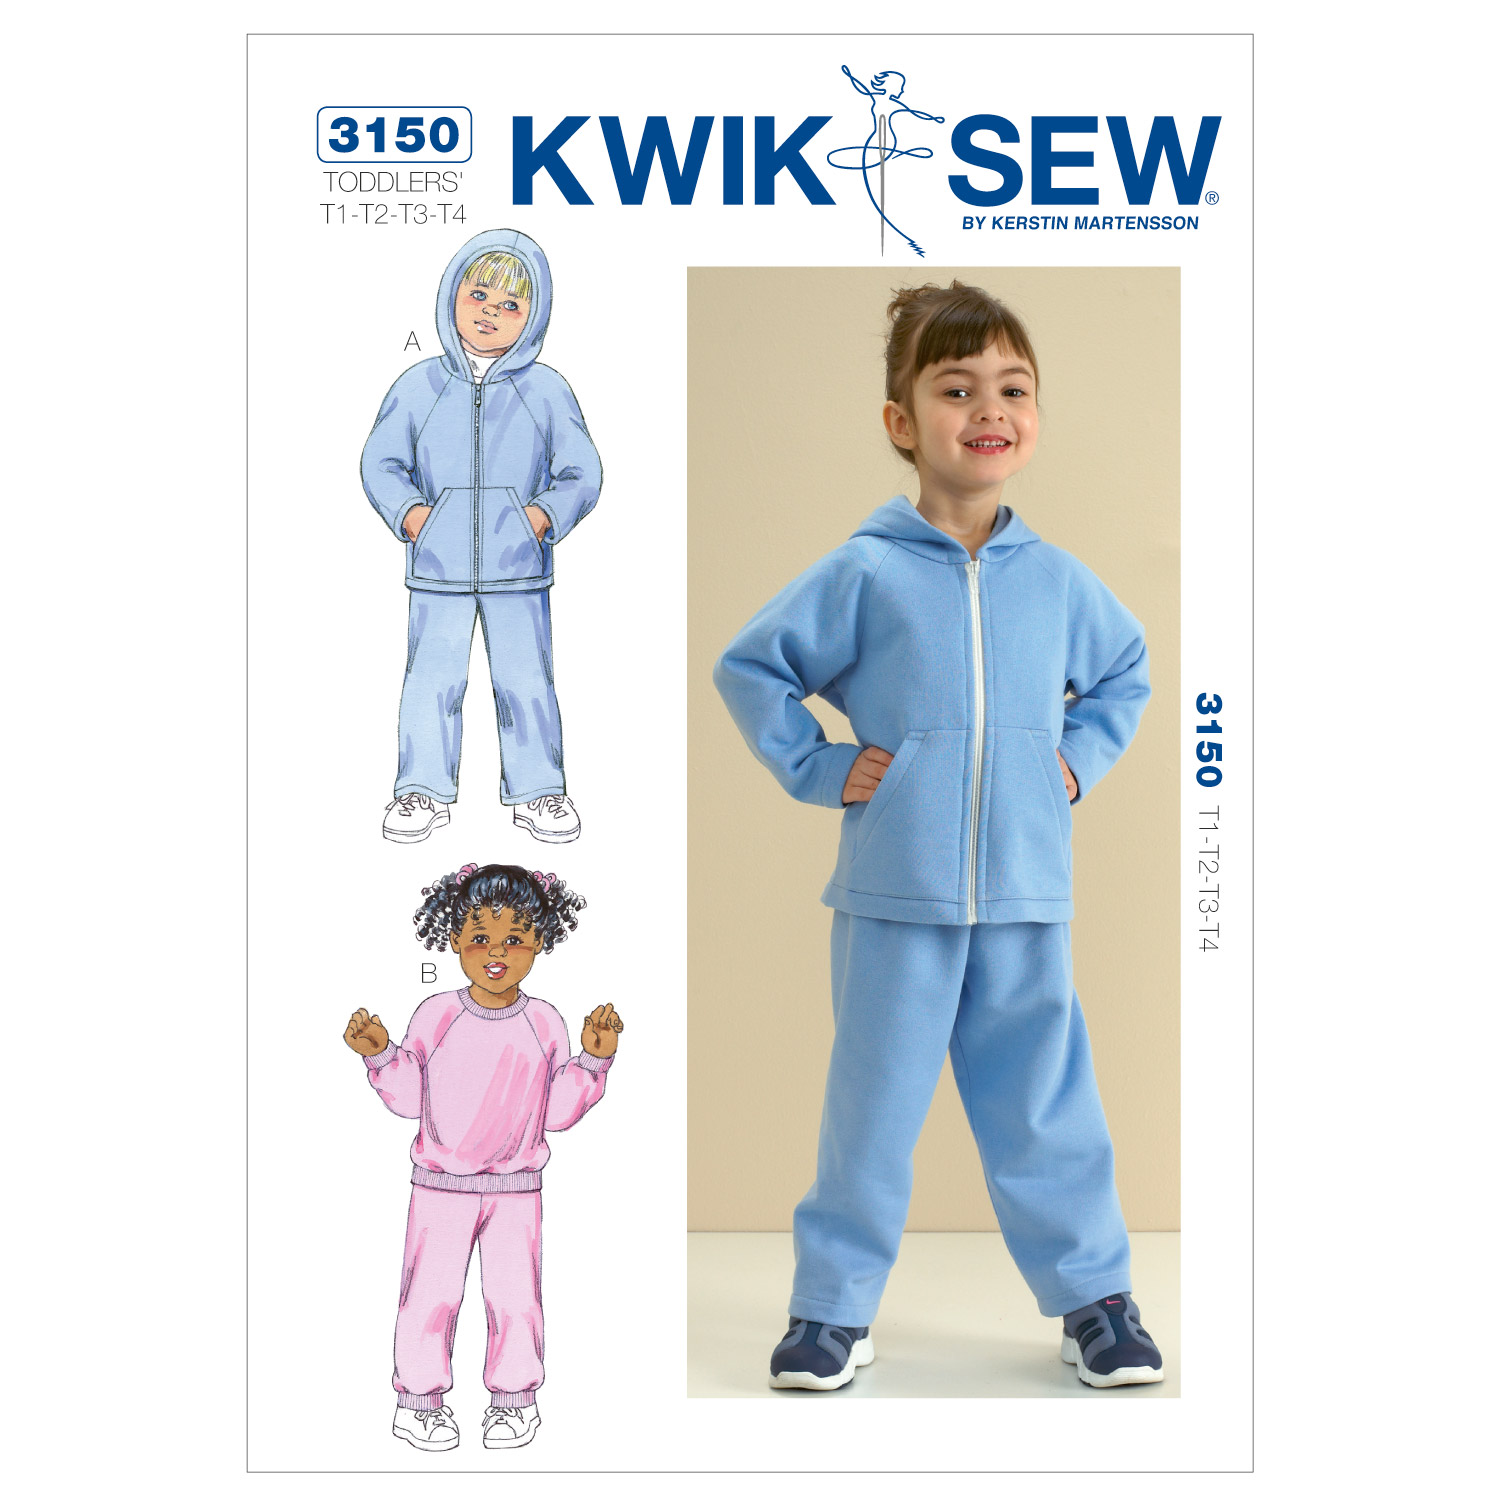 Kwik Sew Pattern K3150 Toddlers\u0027 Casual Outfits-Size T1-T4